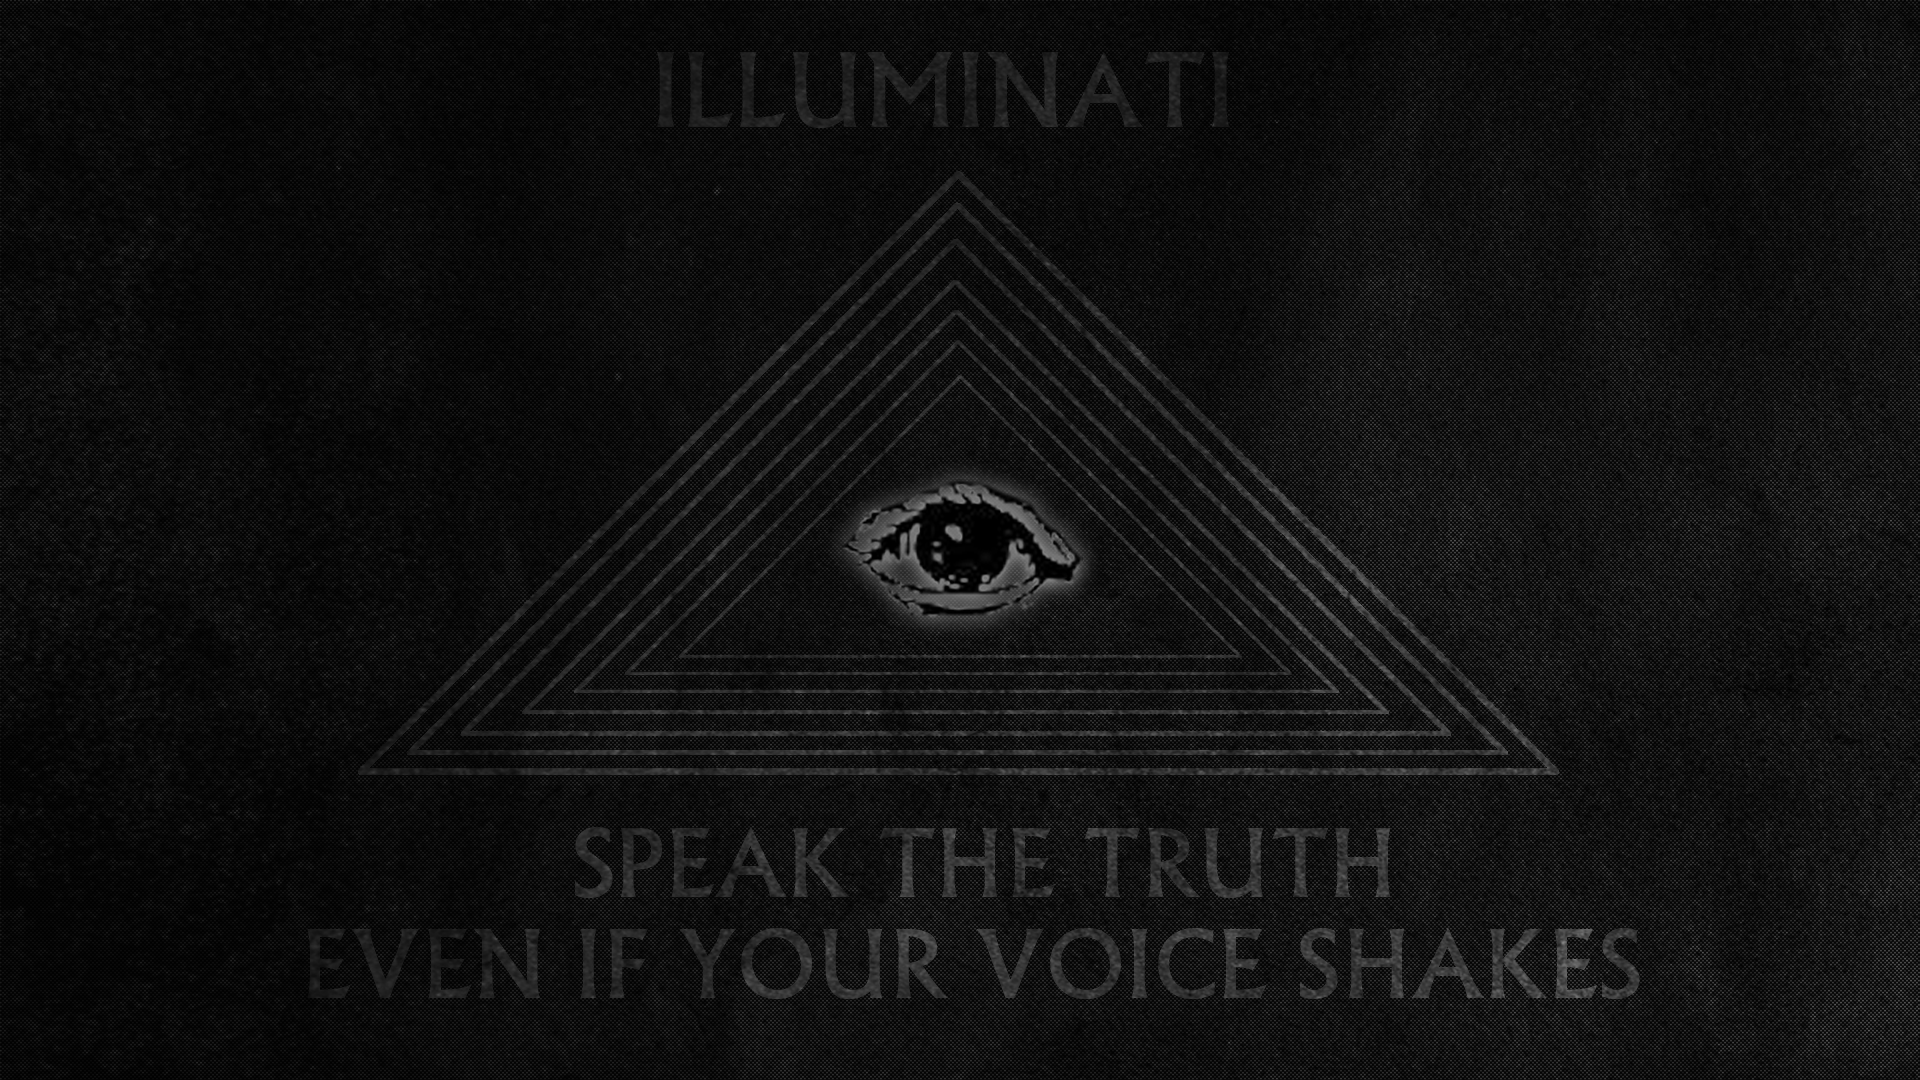 2 illuminati hd wallpapers background images wallpaper abyss voltagebd Gallery